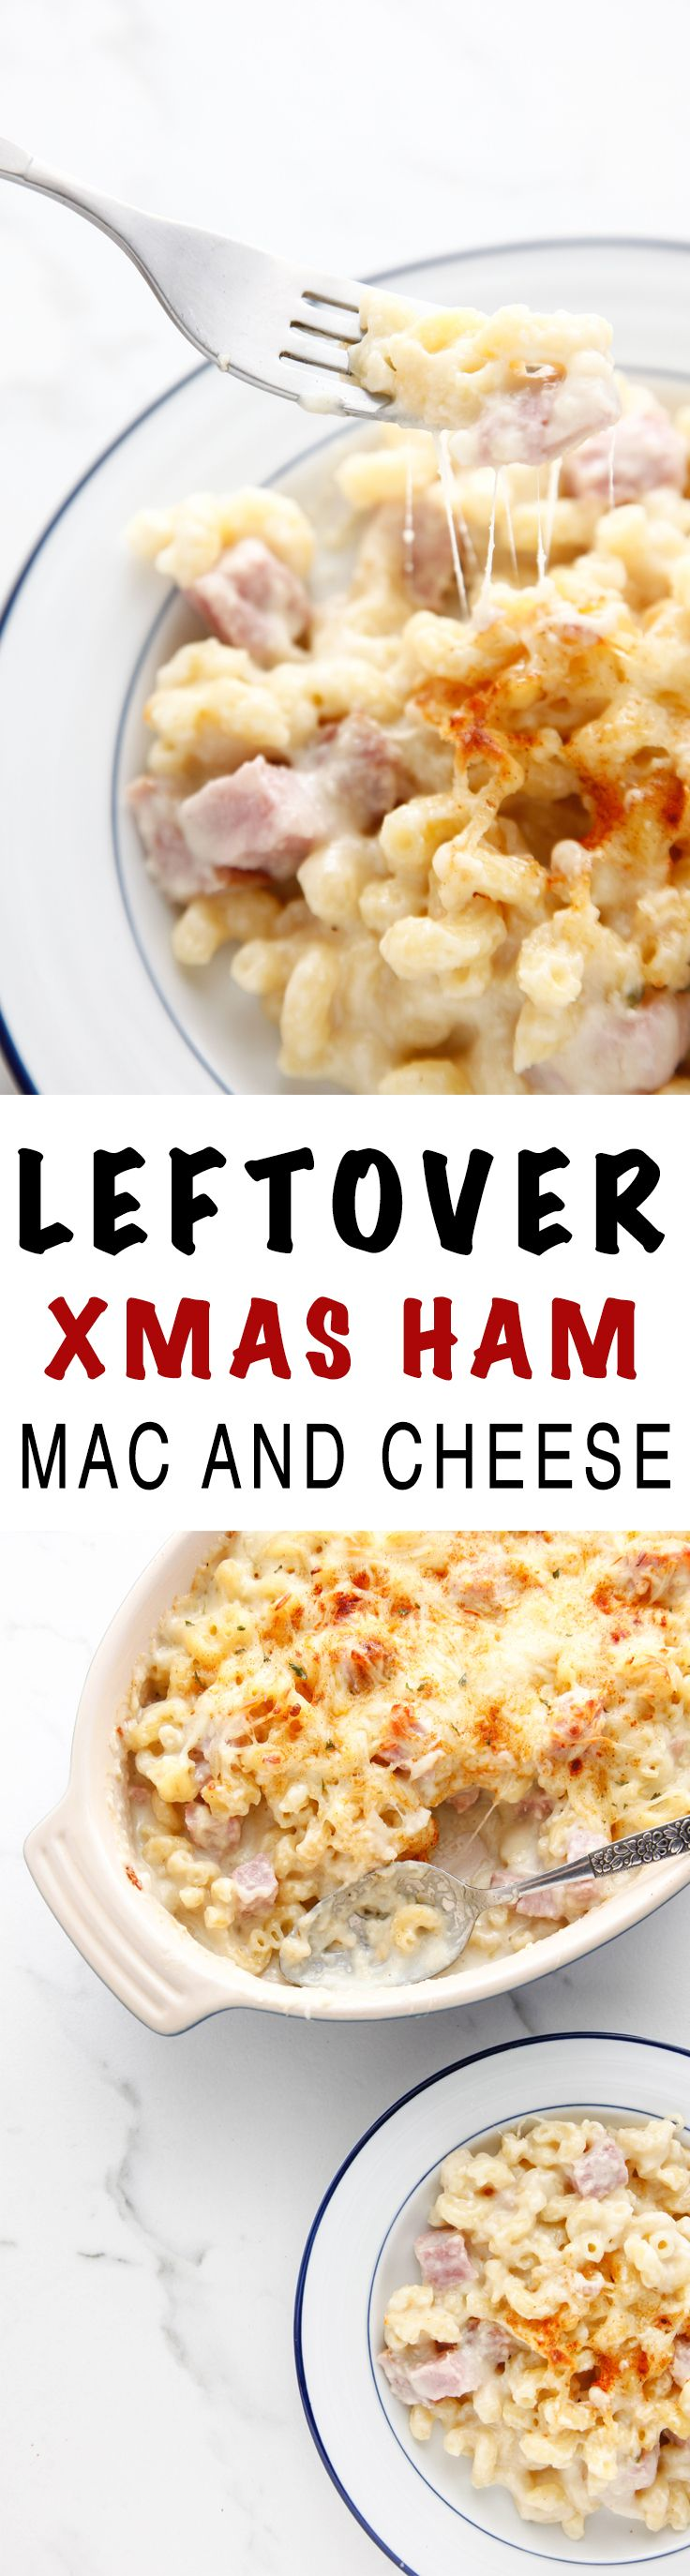 Leftover ham mac and cheese recipe leftover ham hams and macs leftover ham mac and cheese christmas ham dinnerafter forumfinder Image collections